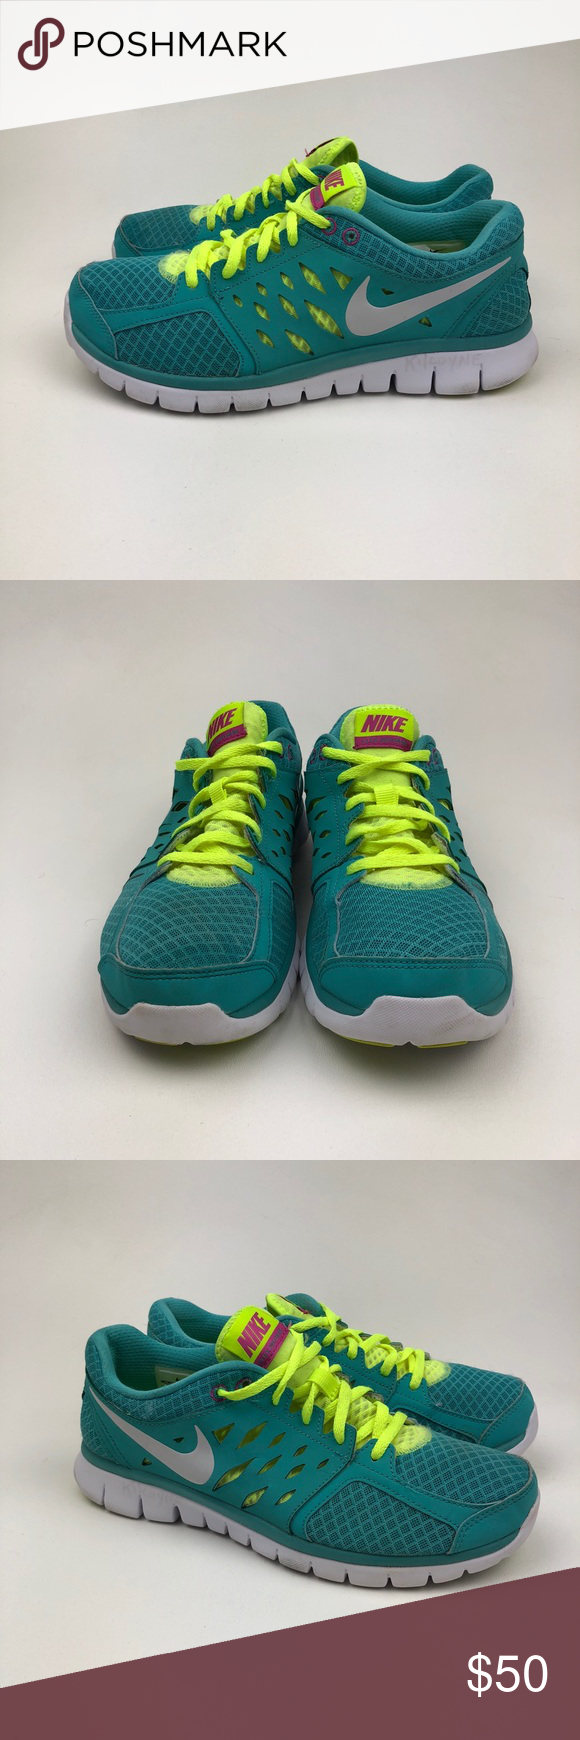 e4ef7dbd57109 Nike Flex 2013 Women s Turquoise Running Shoes Nike Flex Women s Running  Shoes